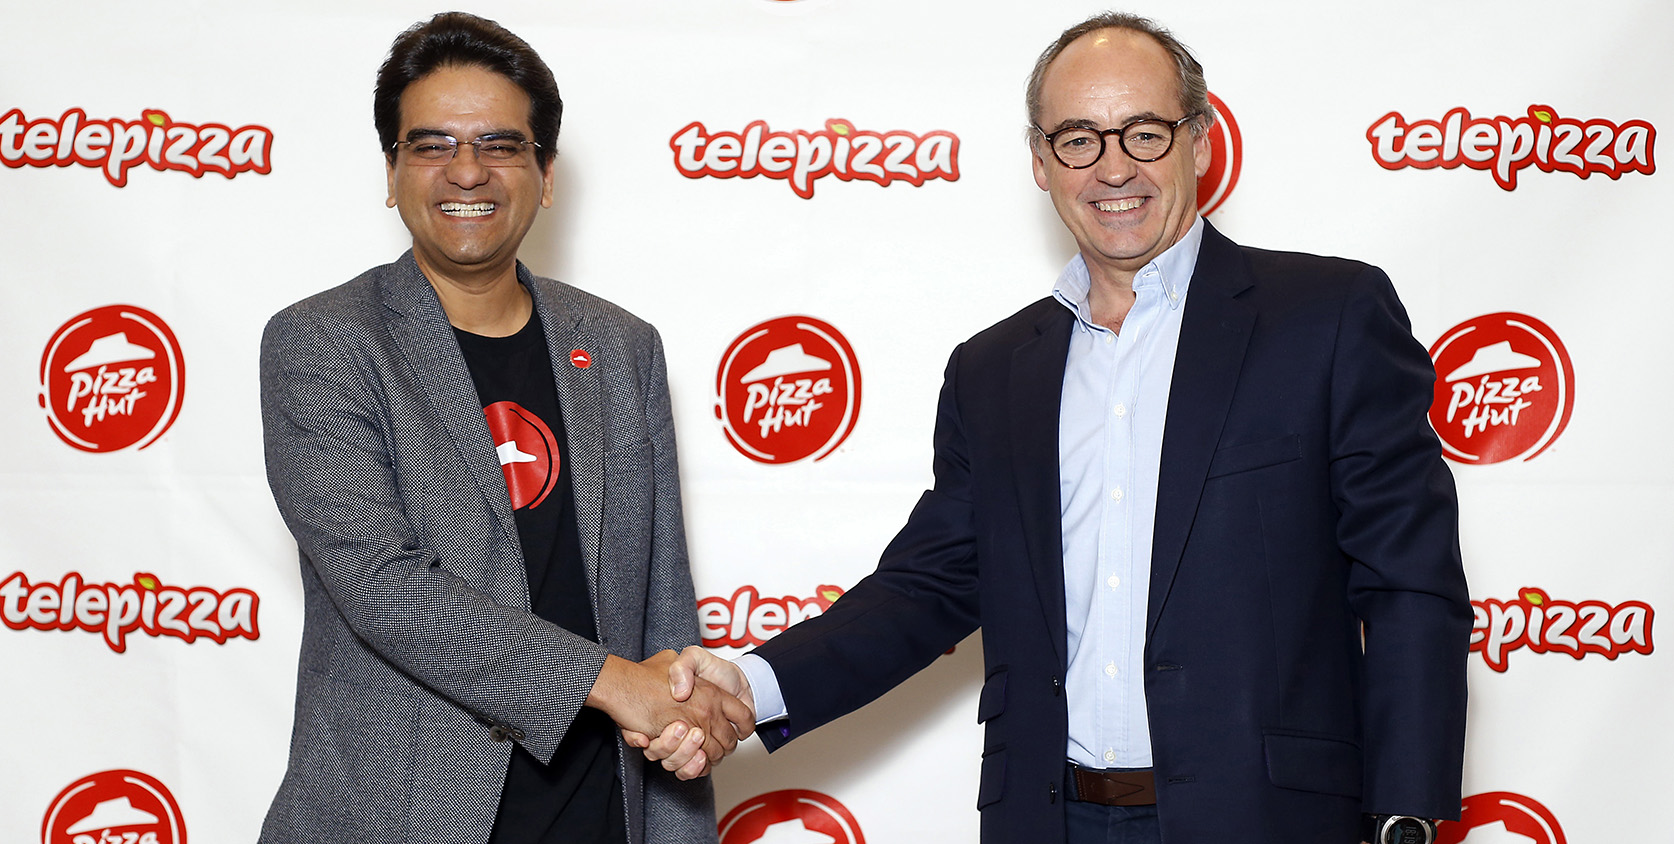 Milind Pant, presidente de Pizza Hut International, y Pablo Juantegui, presidente ejecutivo y CEO de Telepizza.